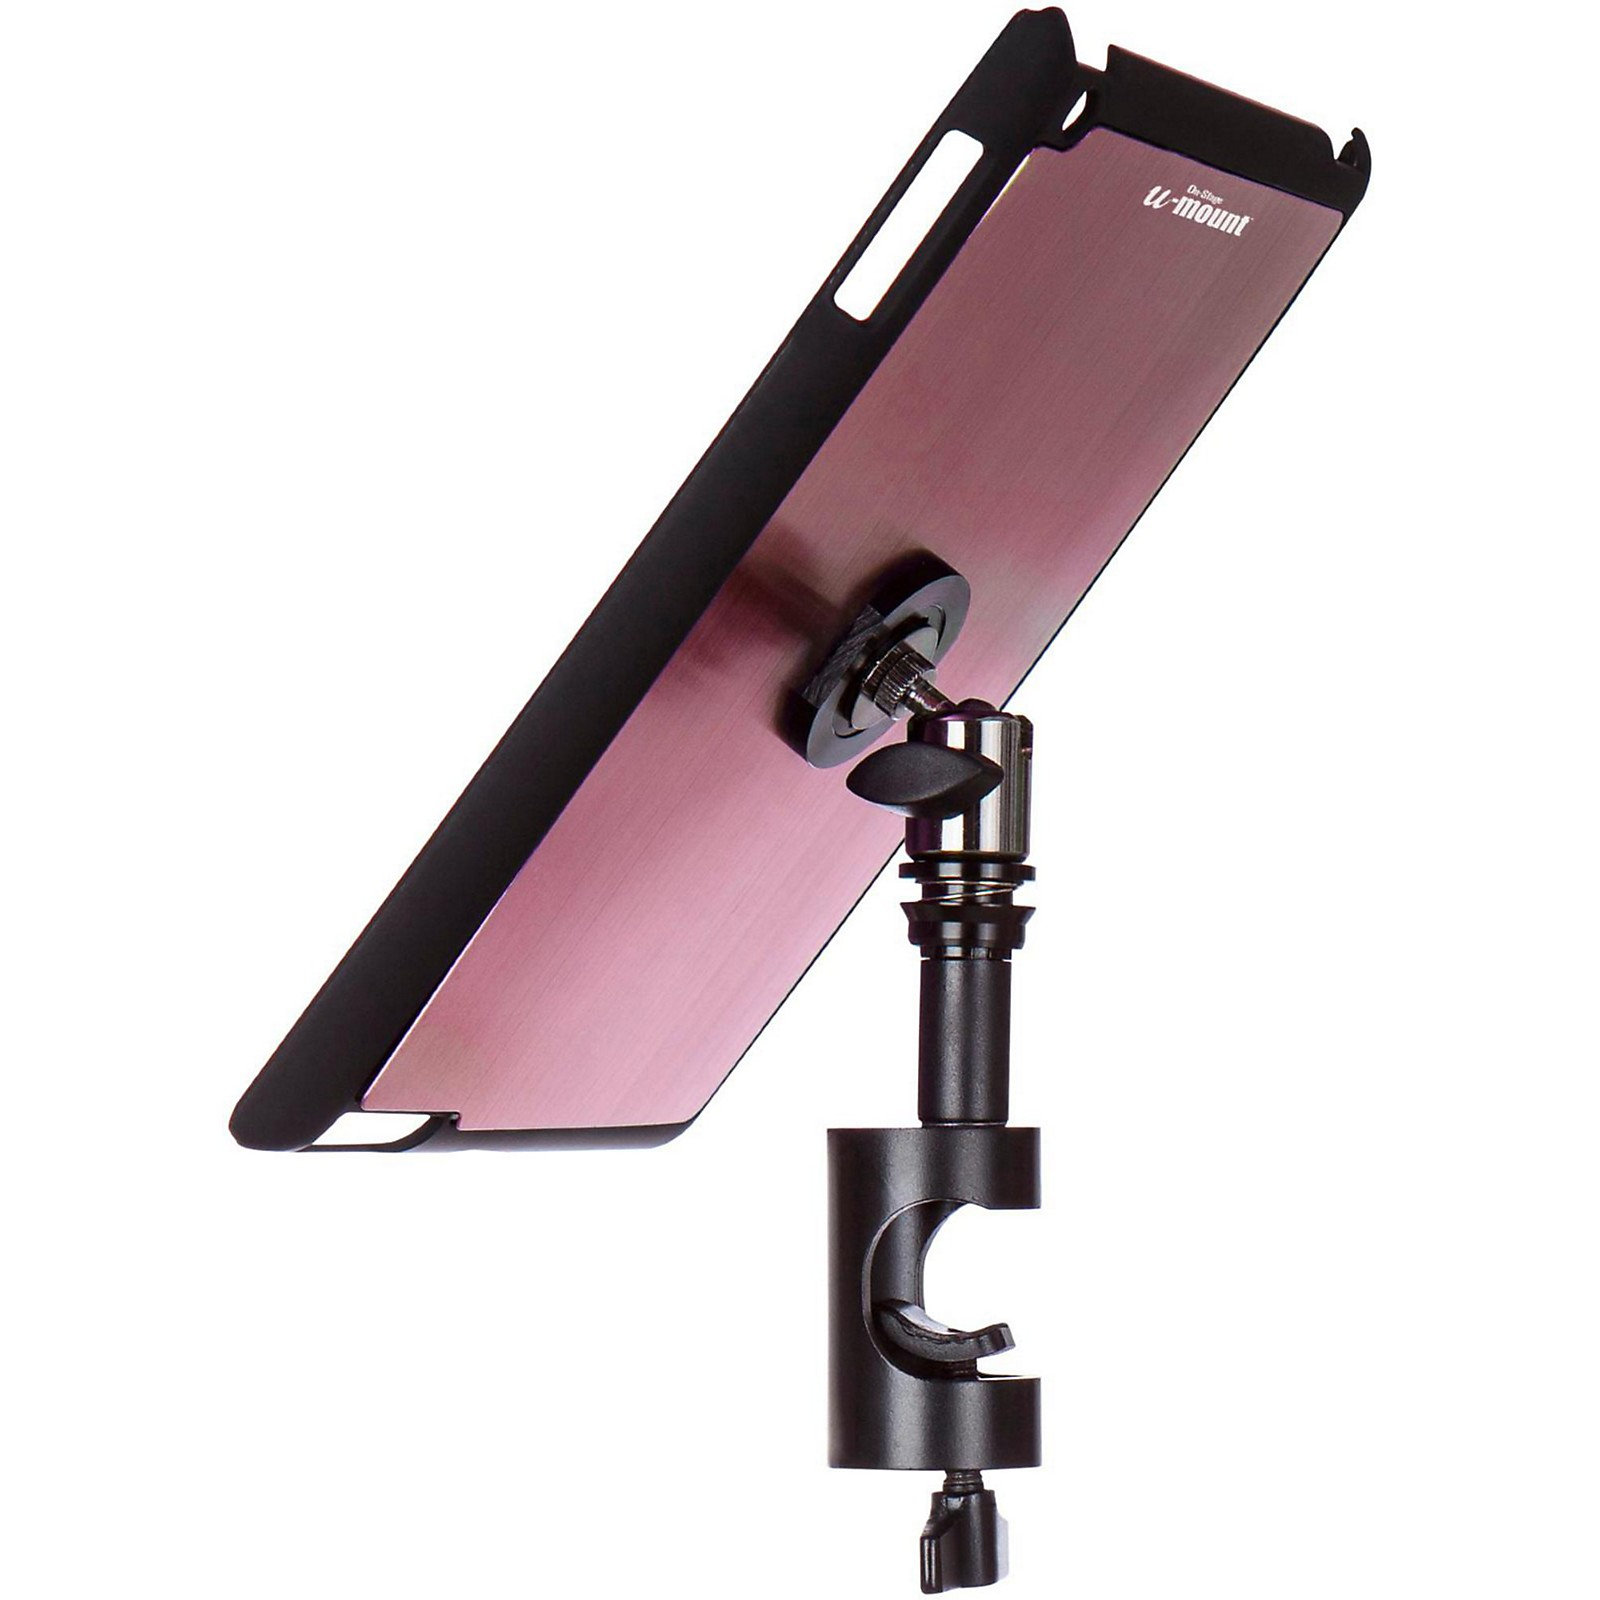 Open Box On-Stage TCM9161 Quick Disconnect Tablet Mounting System with Snap-On Cover